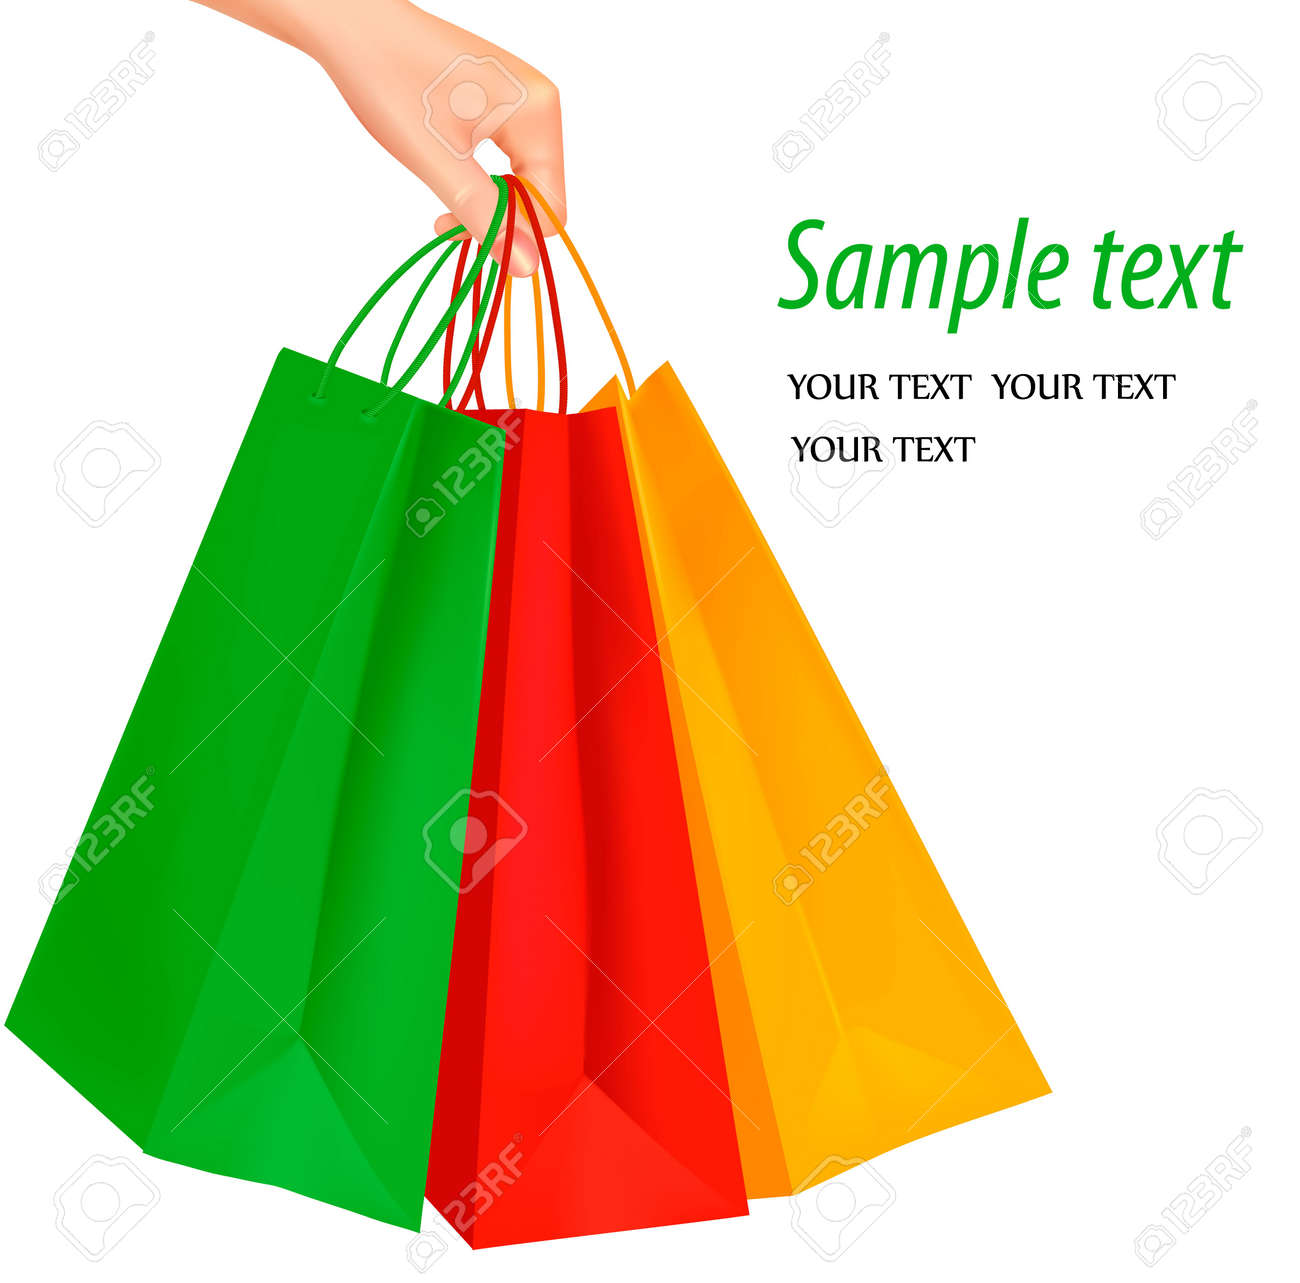 Woman Hand Carrying A Bunch Of Shopping Bags Isolated On White Royalty Free Cliparts Vectors And Stock Illustration Image 11108417